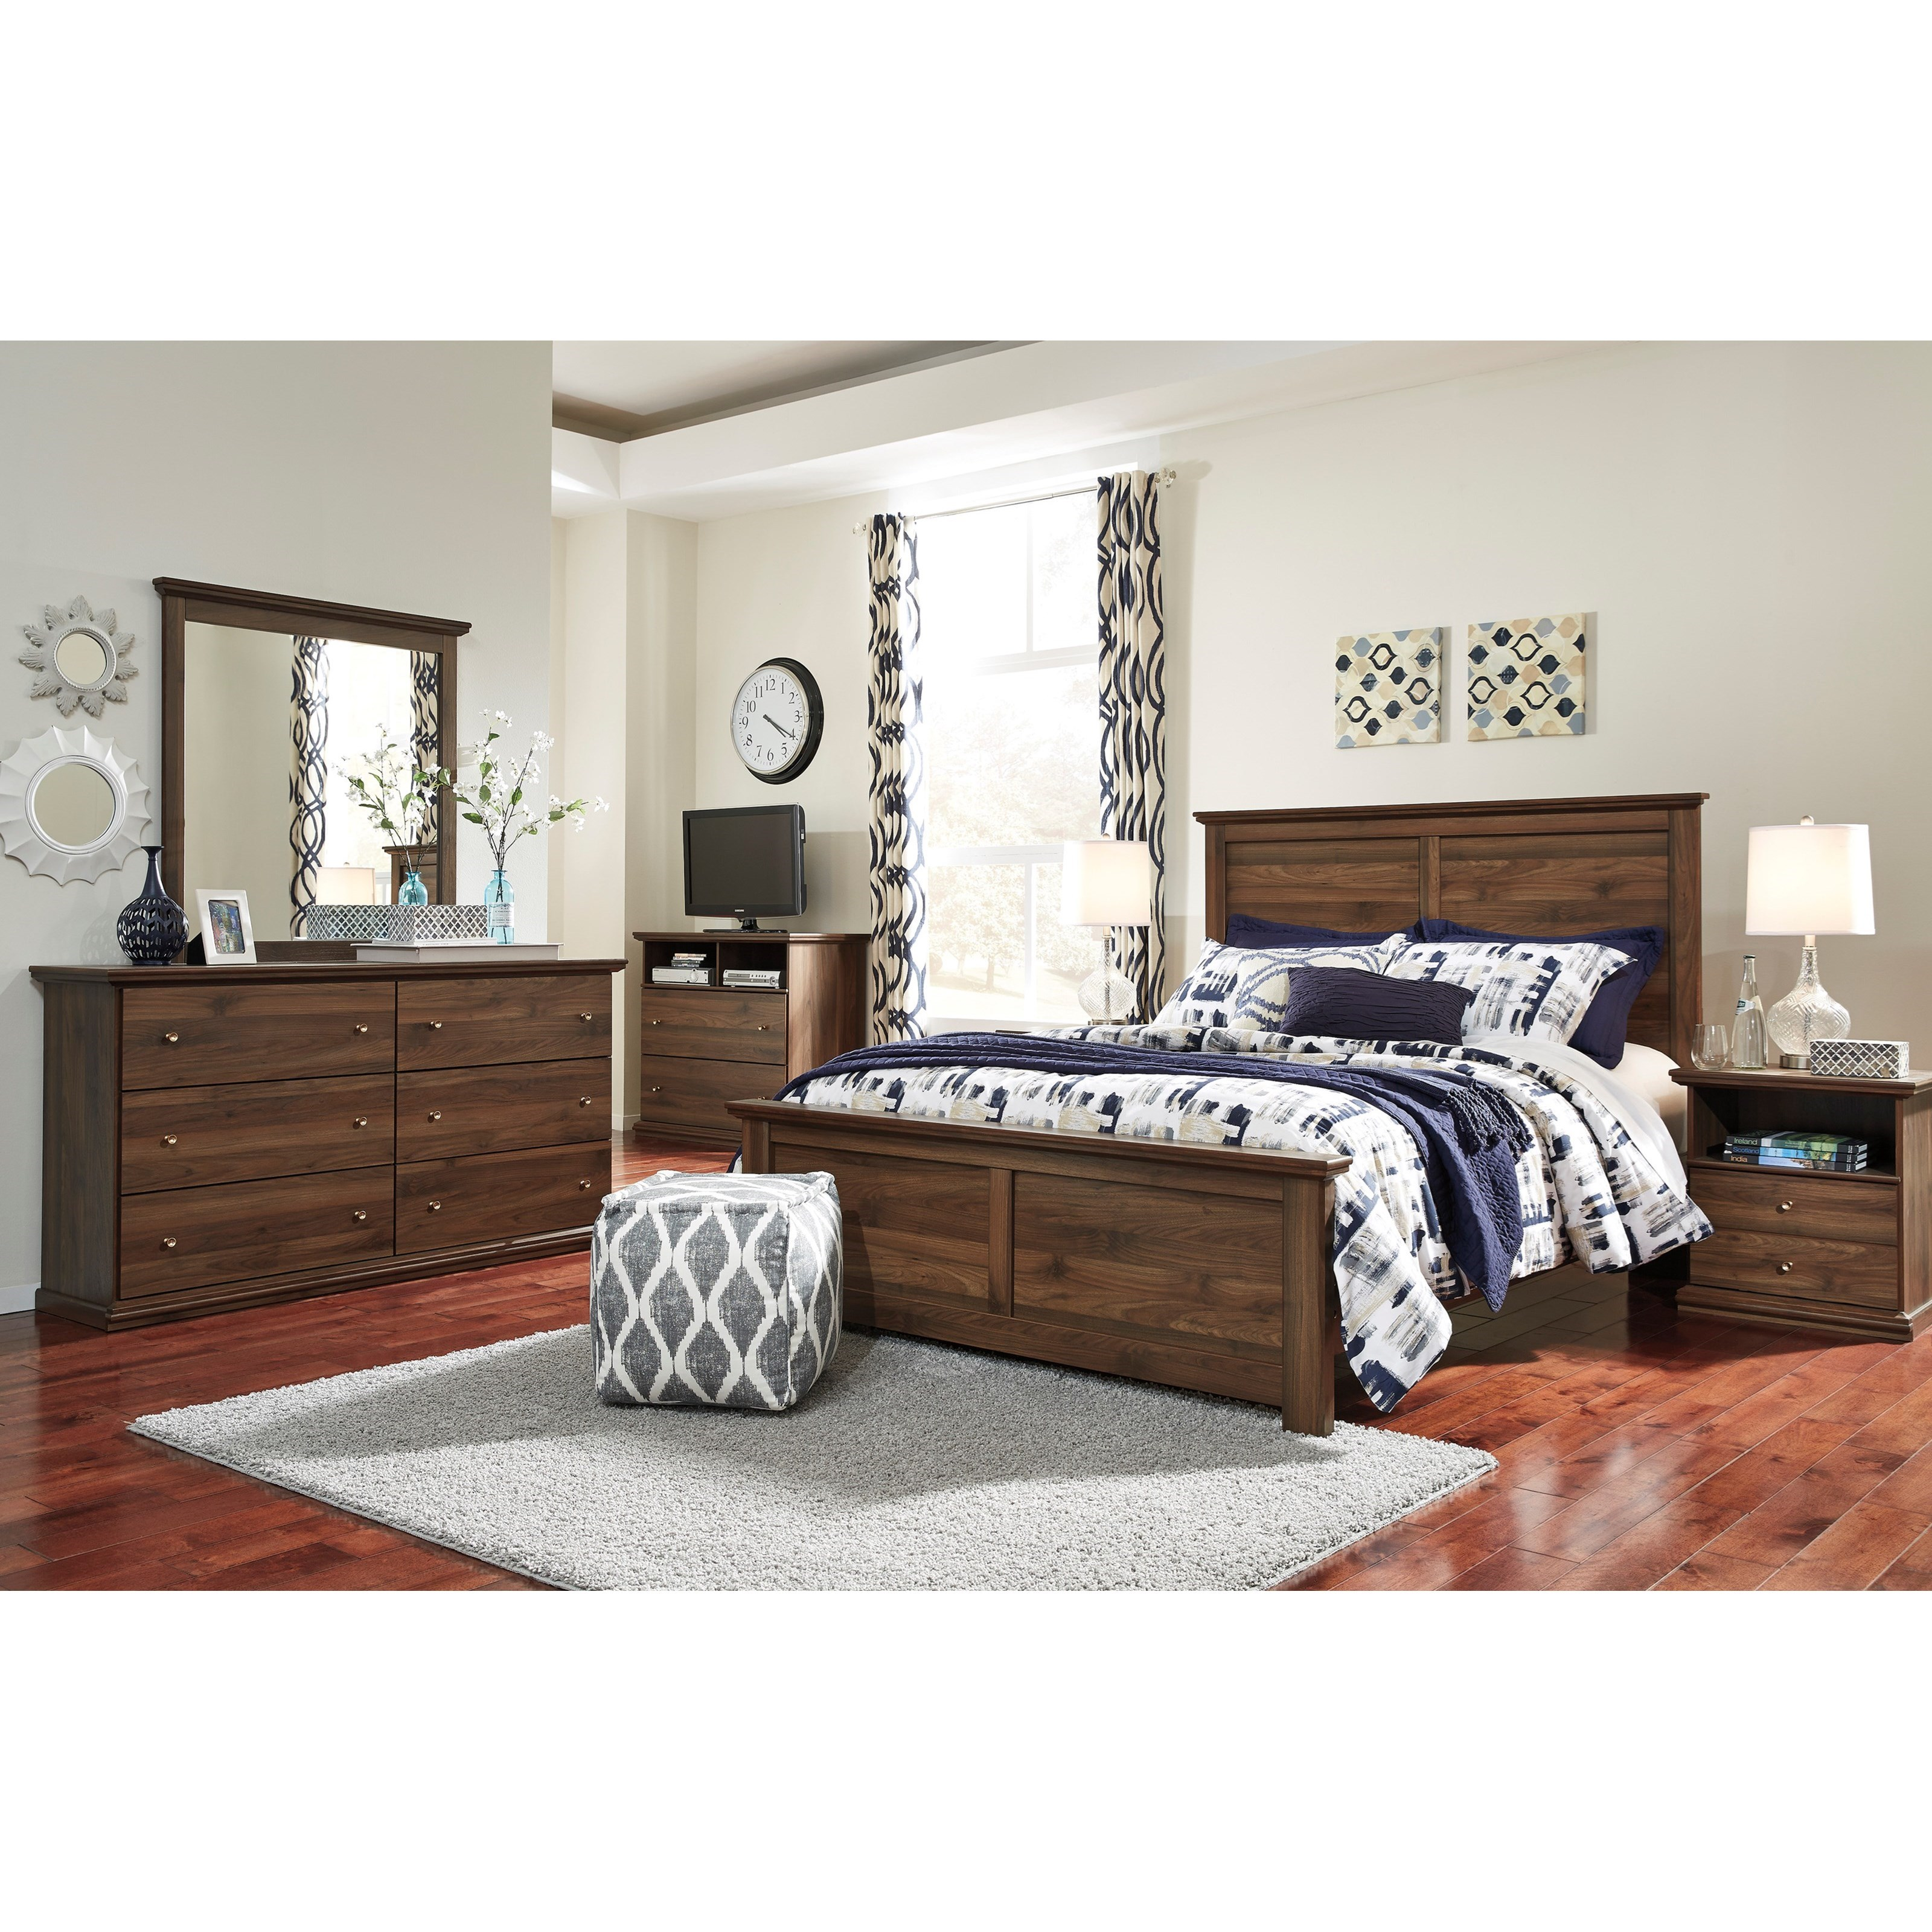 Signature Design by Ashley Burminson Queen Bedroom Group - Item Number: B135 Q Bedroom Group 5